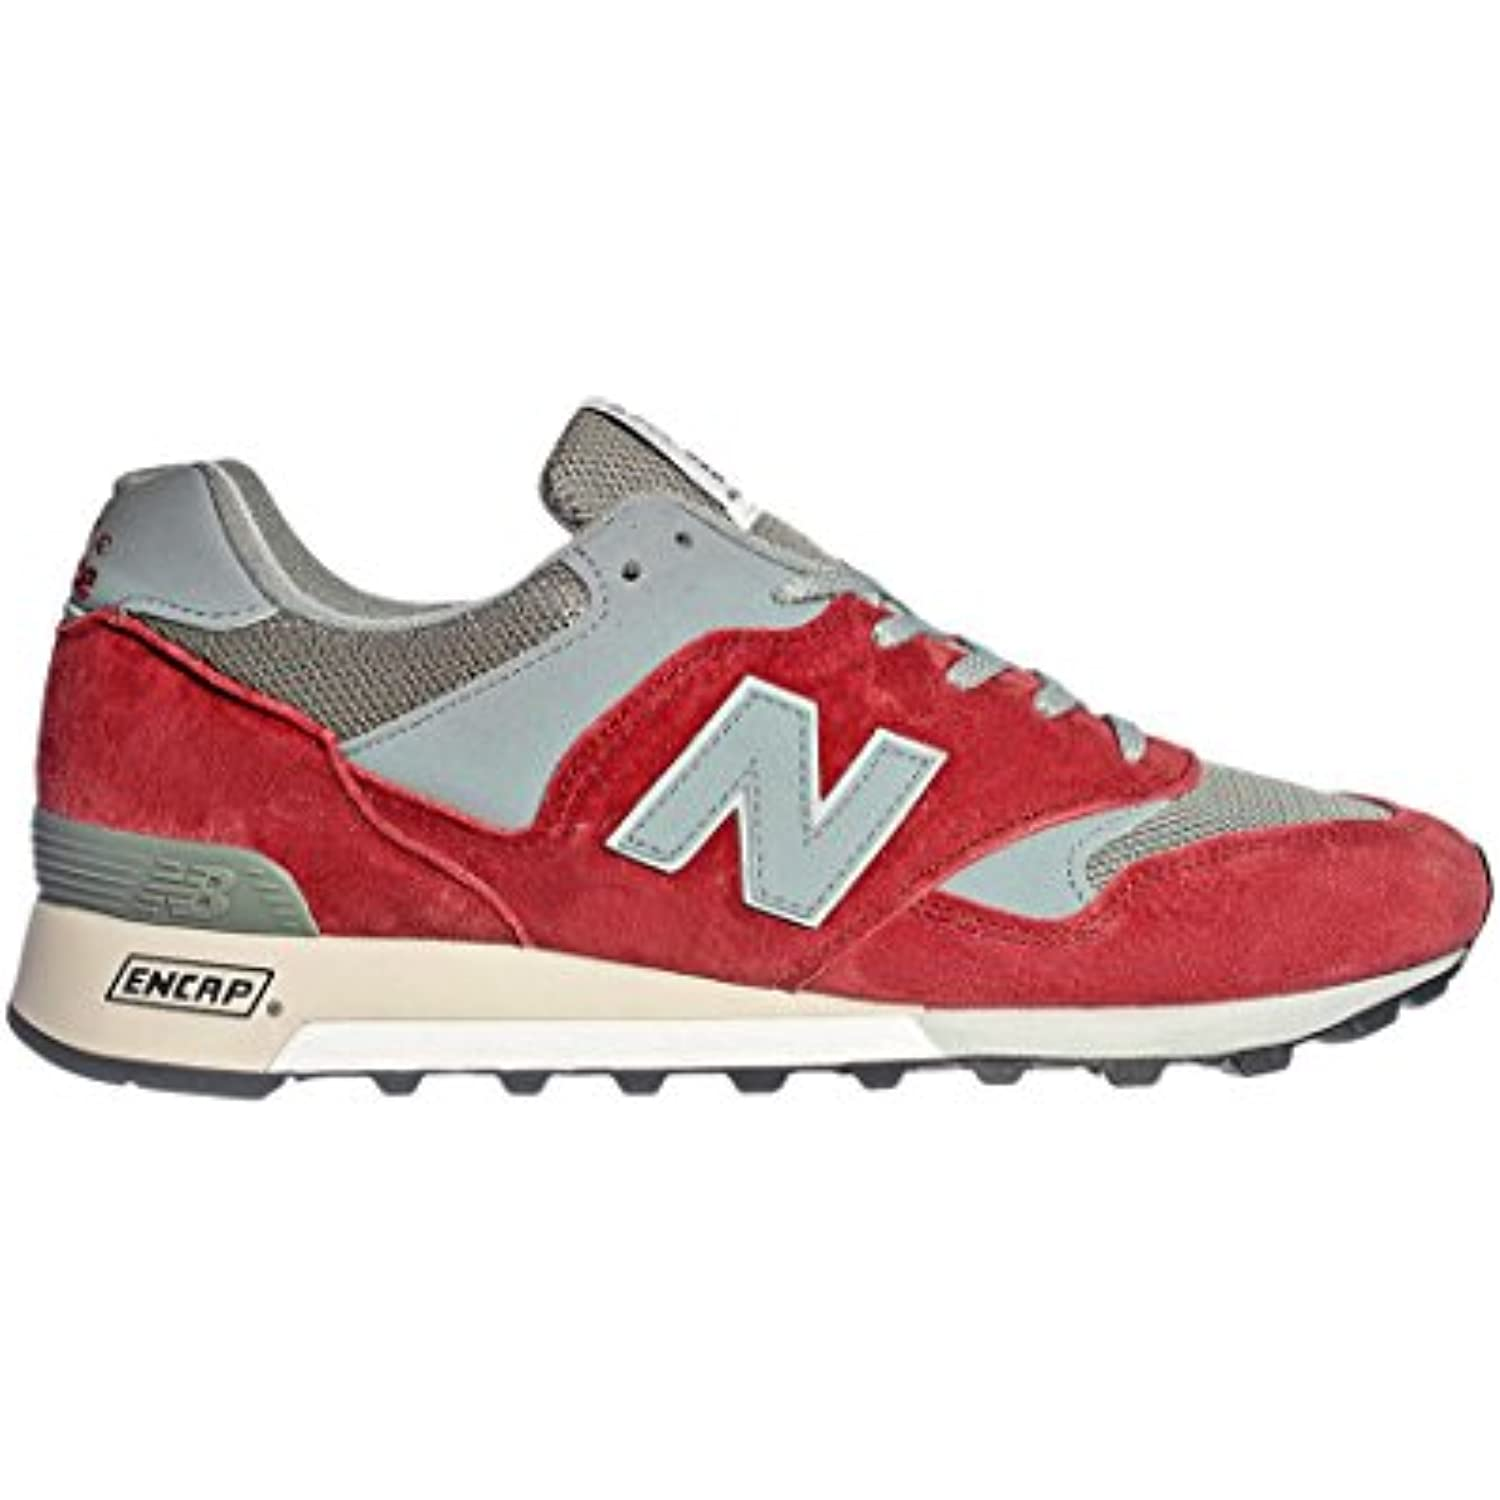 New Balance - M577, PSG salmon - Balance B01N2JK4KB - 314cd1